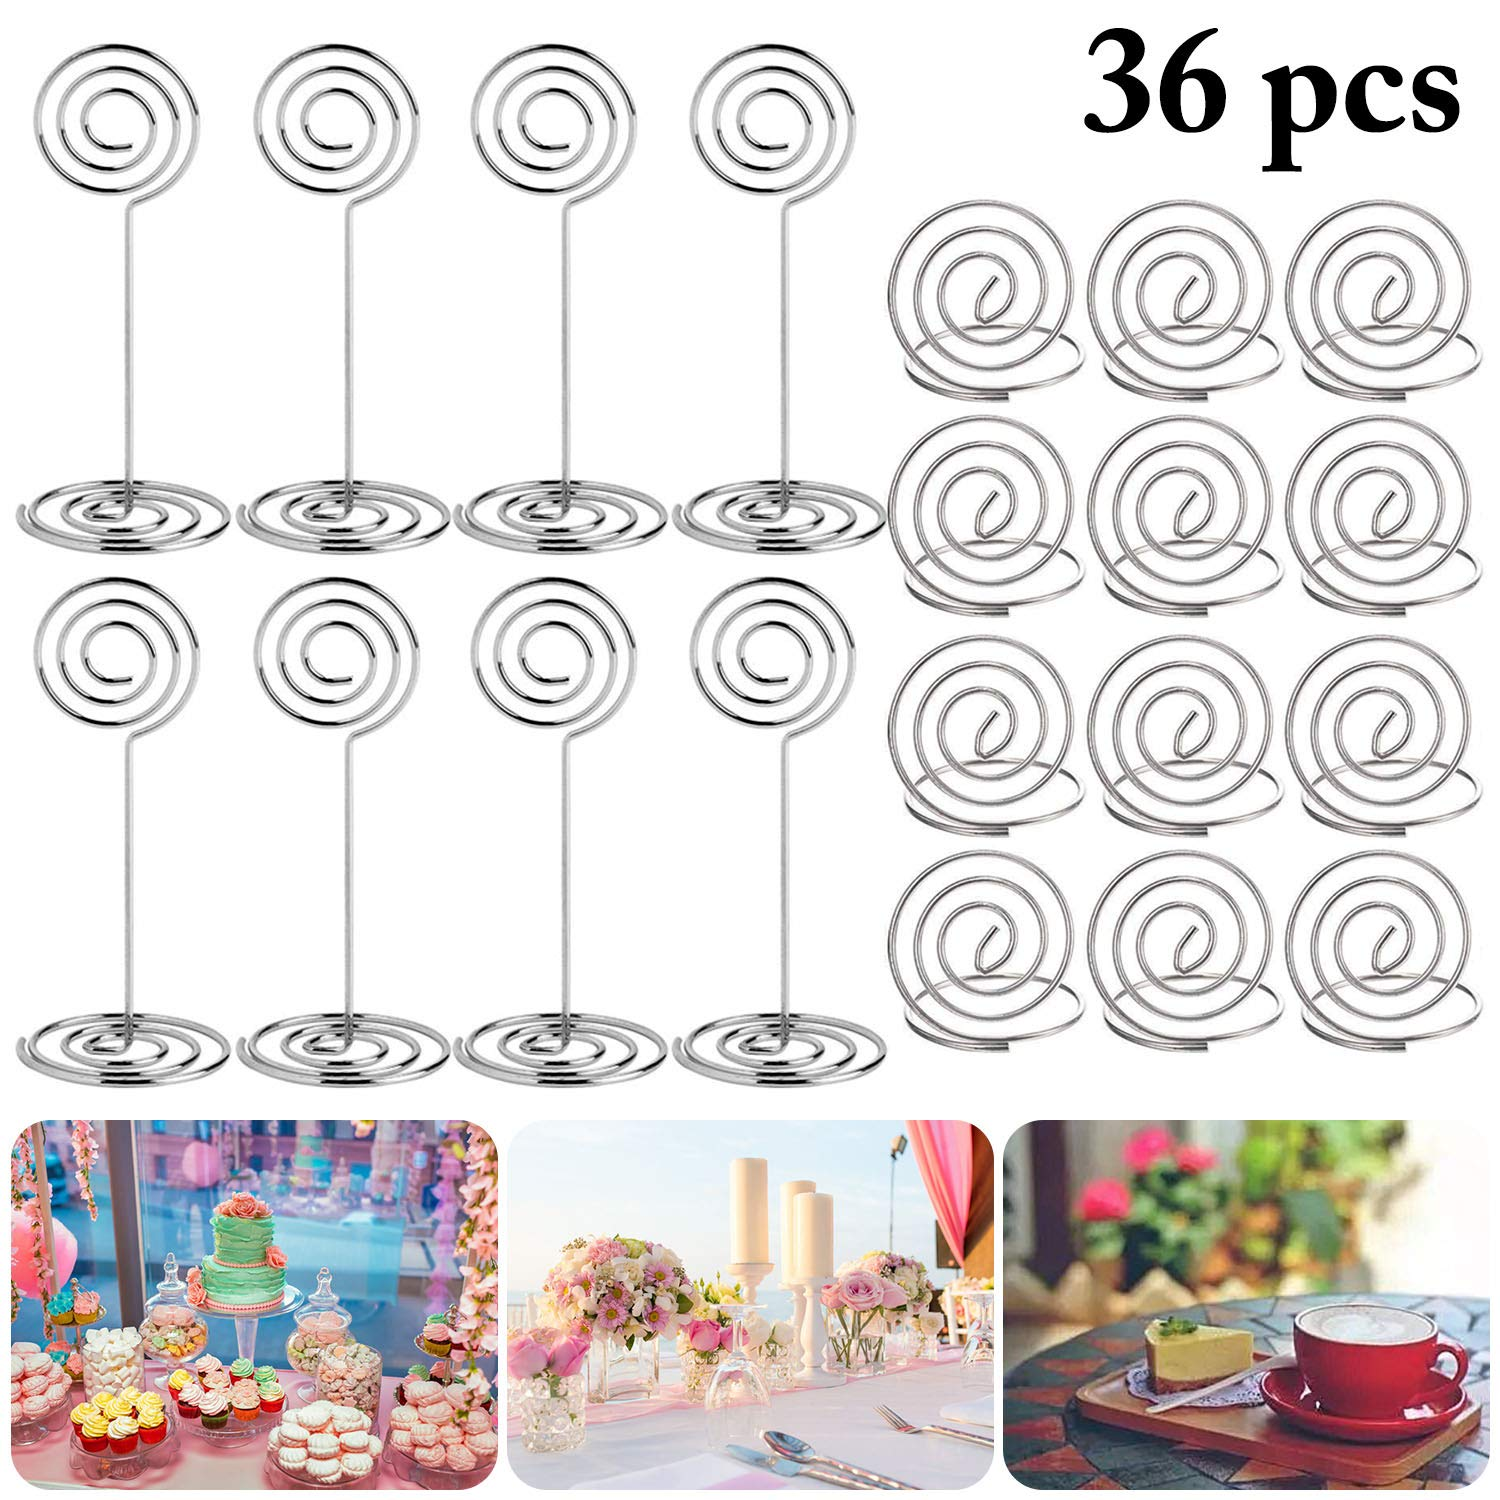 Place Holders, Outgeek 36PCS Table Number Holders Place Card Holders Desk Card Stand Clips Wire Table Picture Photo Holder Tabletop Postcard Menu Memo Name Card Recipe Centerpieces Number Photo Stands by Outgeek